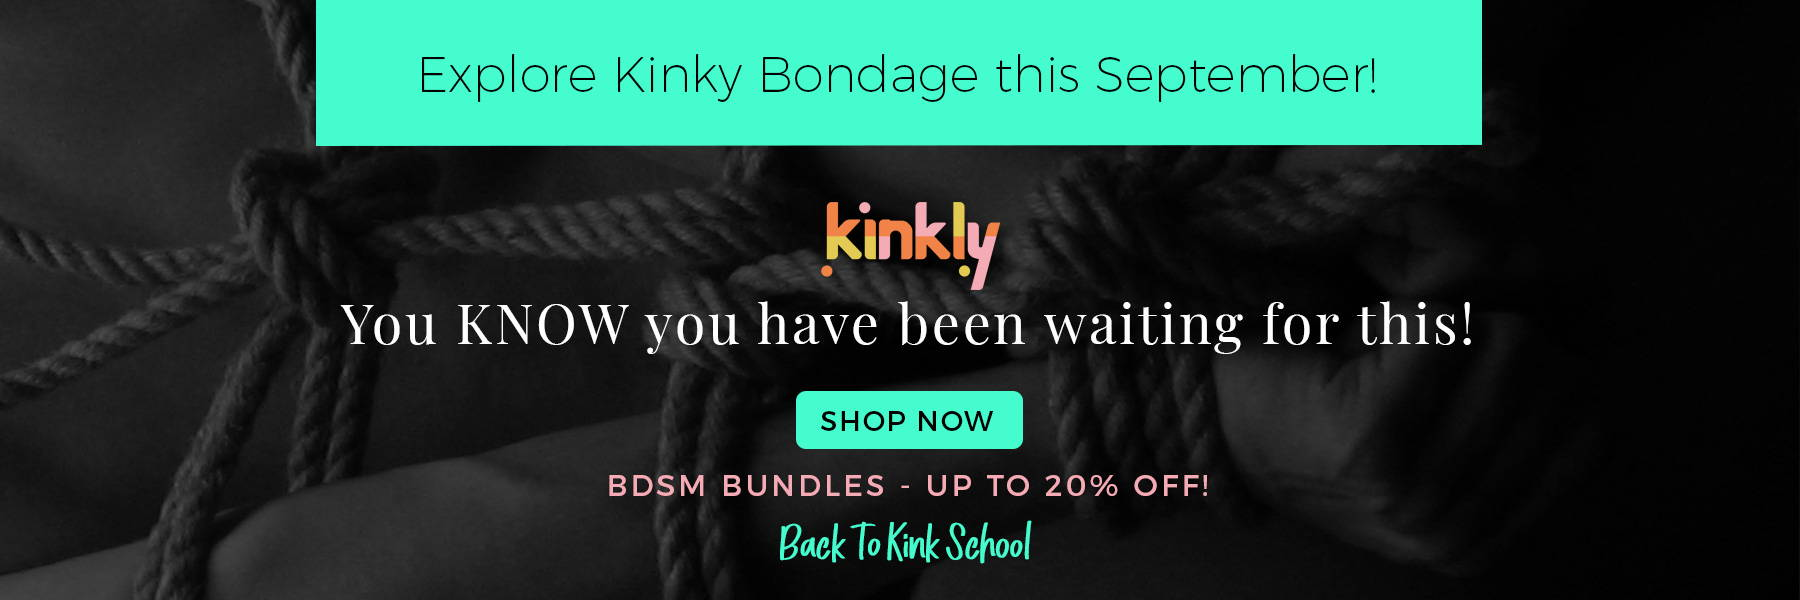 Display image for the BDSM kit sale. Image reads